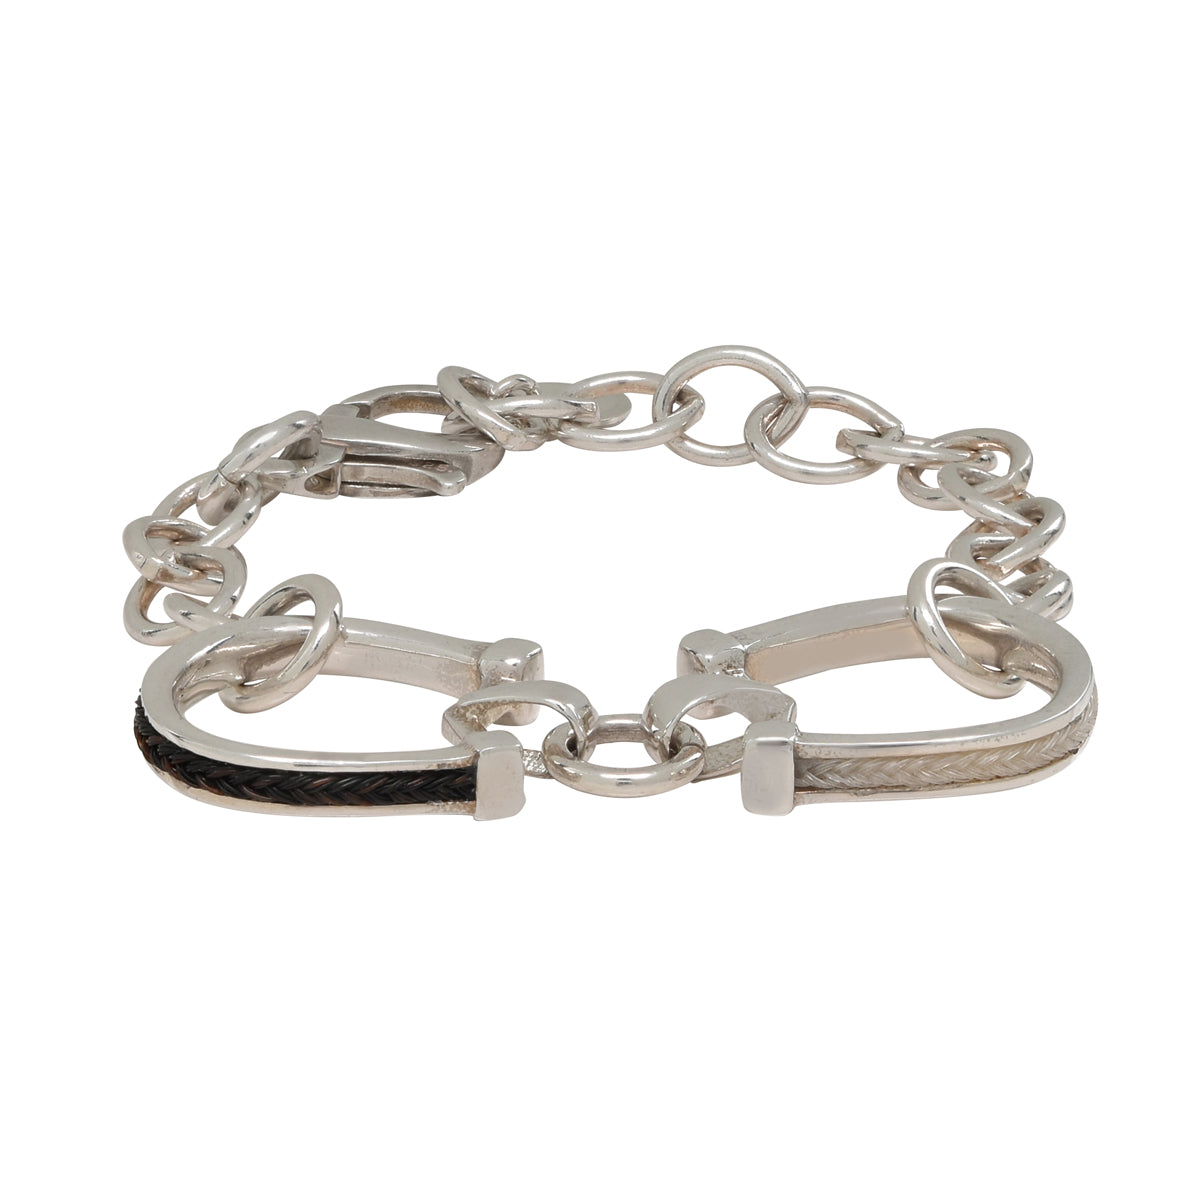 Double Horseshoe Bracelet with Inset Horsehair Braid